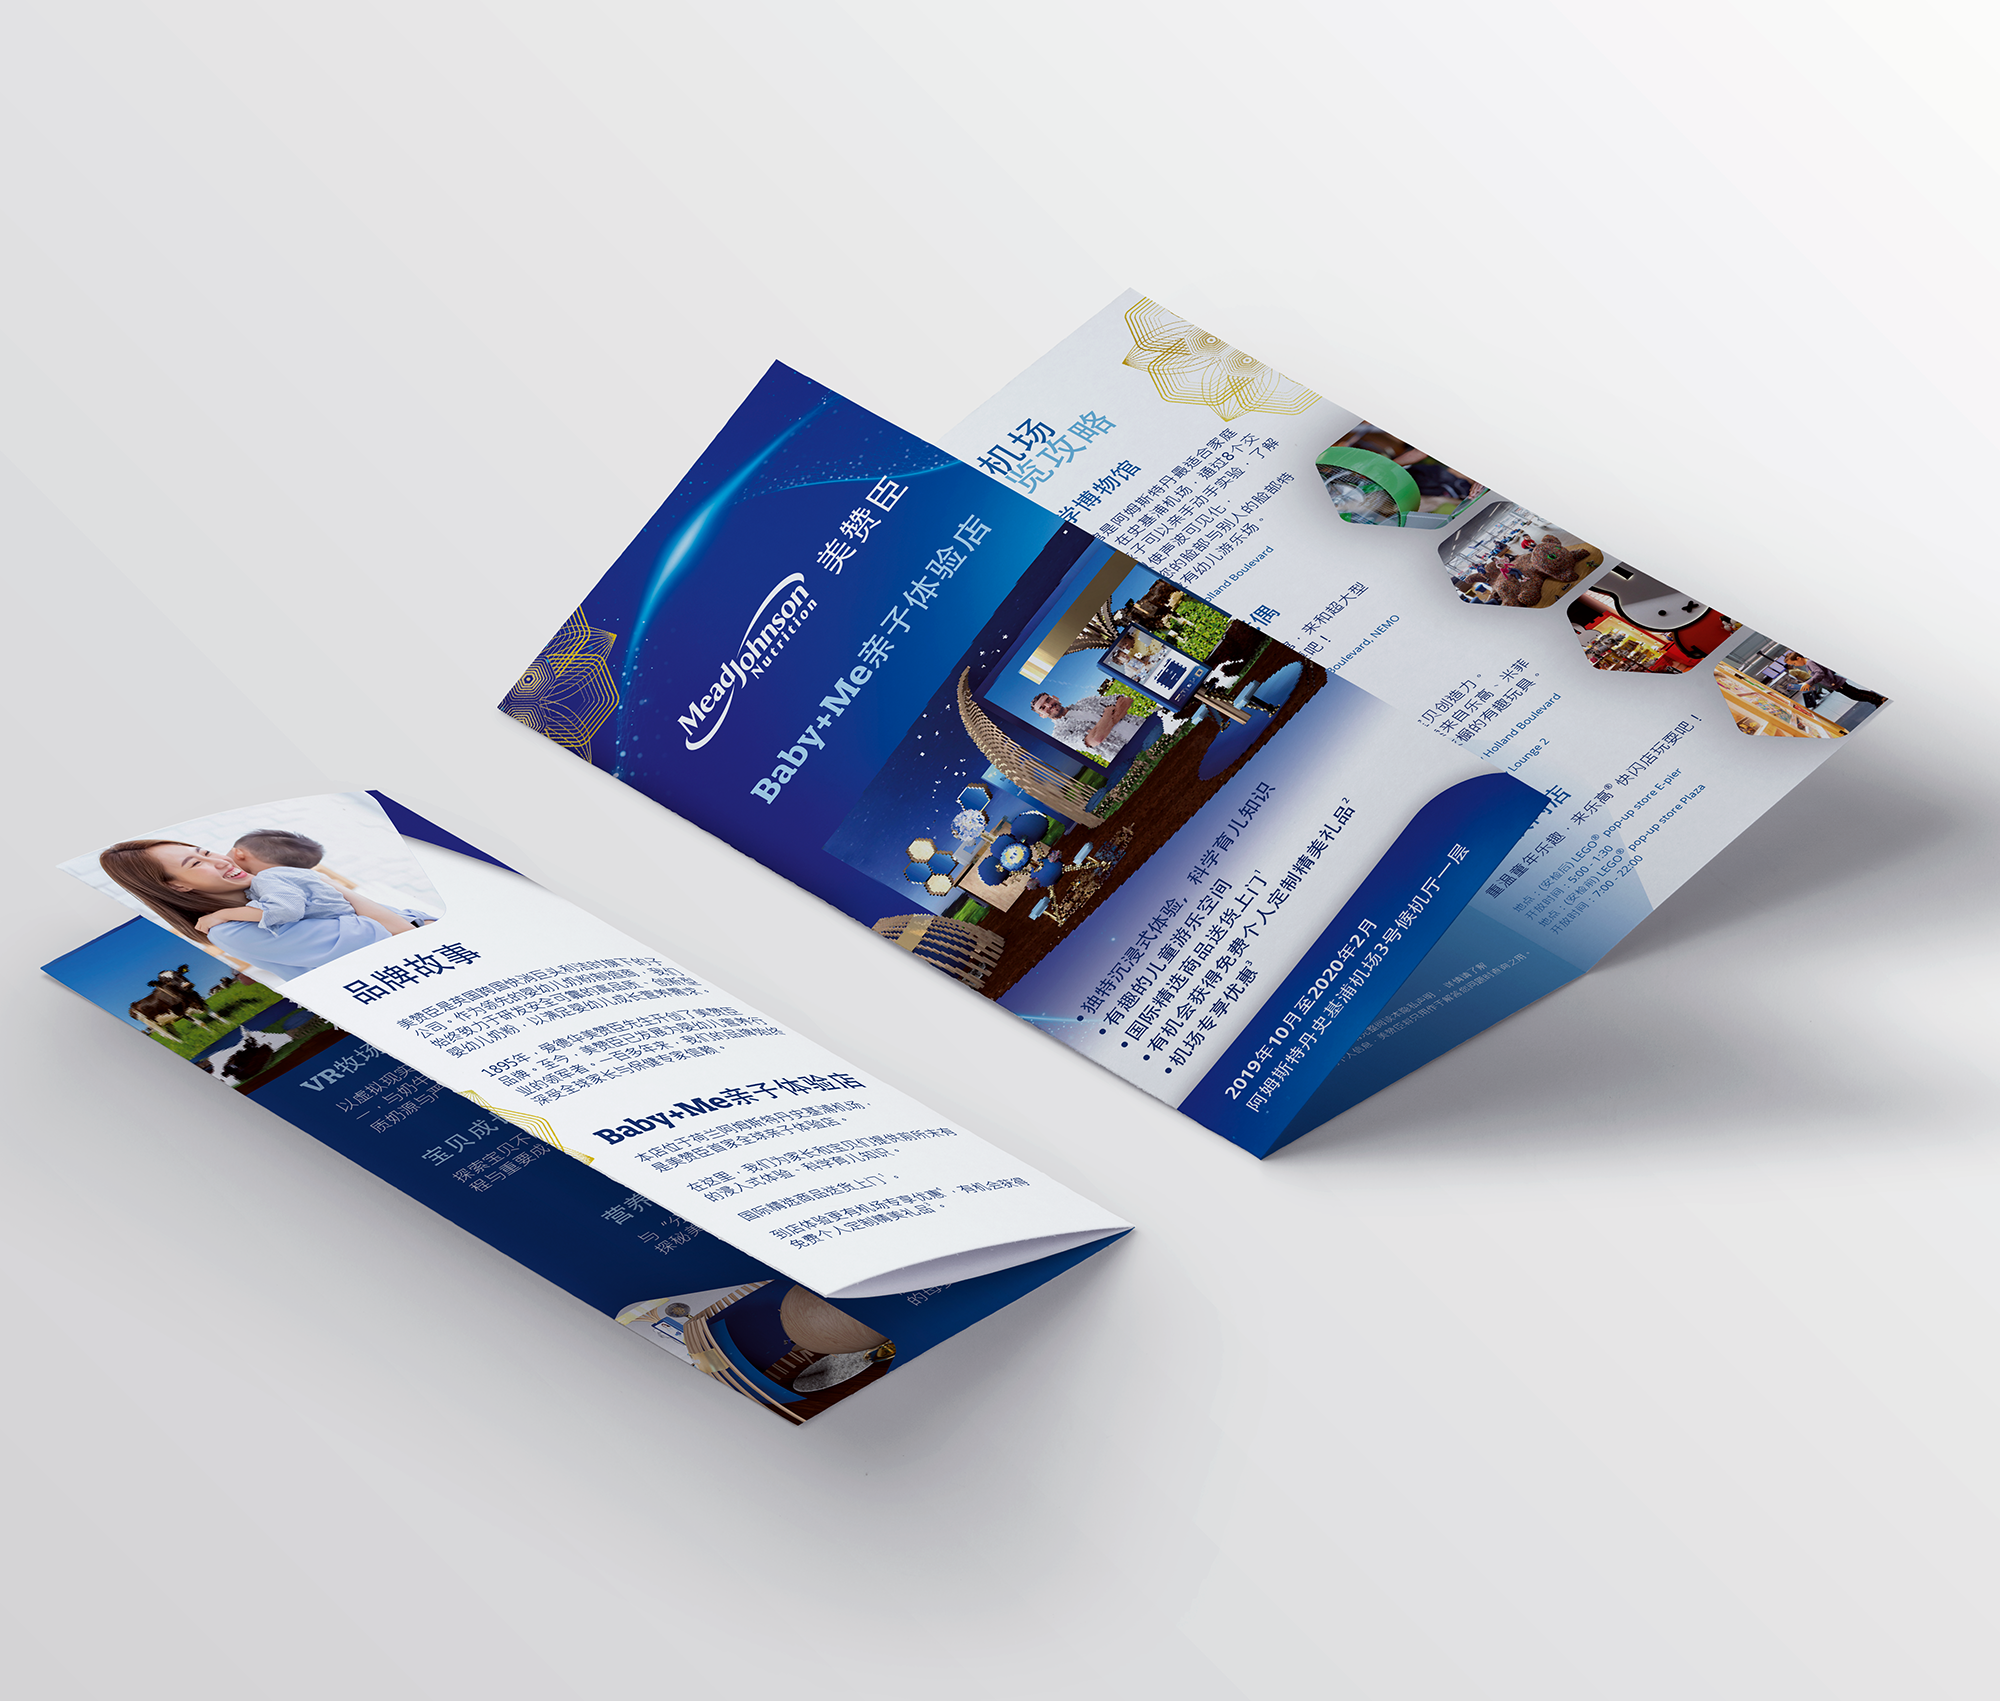 Every Touchpoint. - We were responsible for all promotional materials including flyers, children's activity passports, priority pass invites and signage to enhance brand awareness and draw customers closer to the campaign.